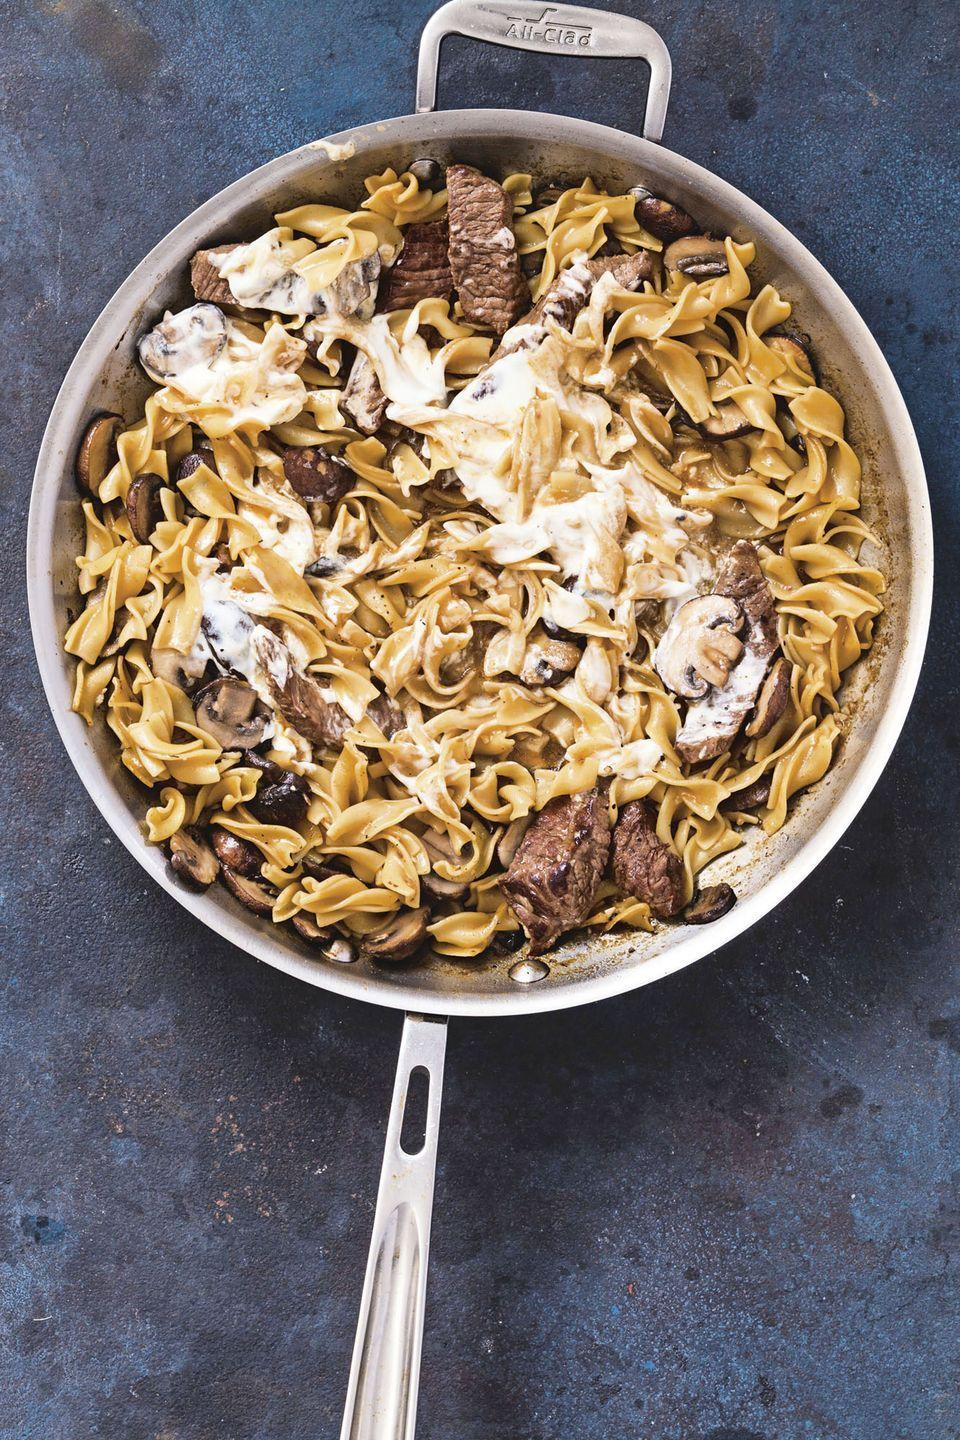 """<p>Another one-pan weeknight hero that is insanely flavorful, white wine and beef broth deglaze the umami bits of sirloin in the pan.</p><p><em><a href=""""https://www.goodhousekeeping.com/food-recipes/easy/a24178537/beef-stroganoff-recipe/"""" rel=""""nofollow noopener"""" target=""""_blank"""" data-ylk=""""slk:Get the recipe for Beef Stroganoff »"""" class=""""link rapid-noclick-resp"""">Get the recipe for Beef Stroganoff »</a></em></p>"""